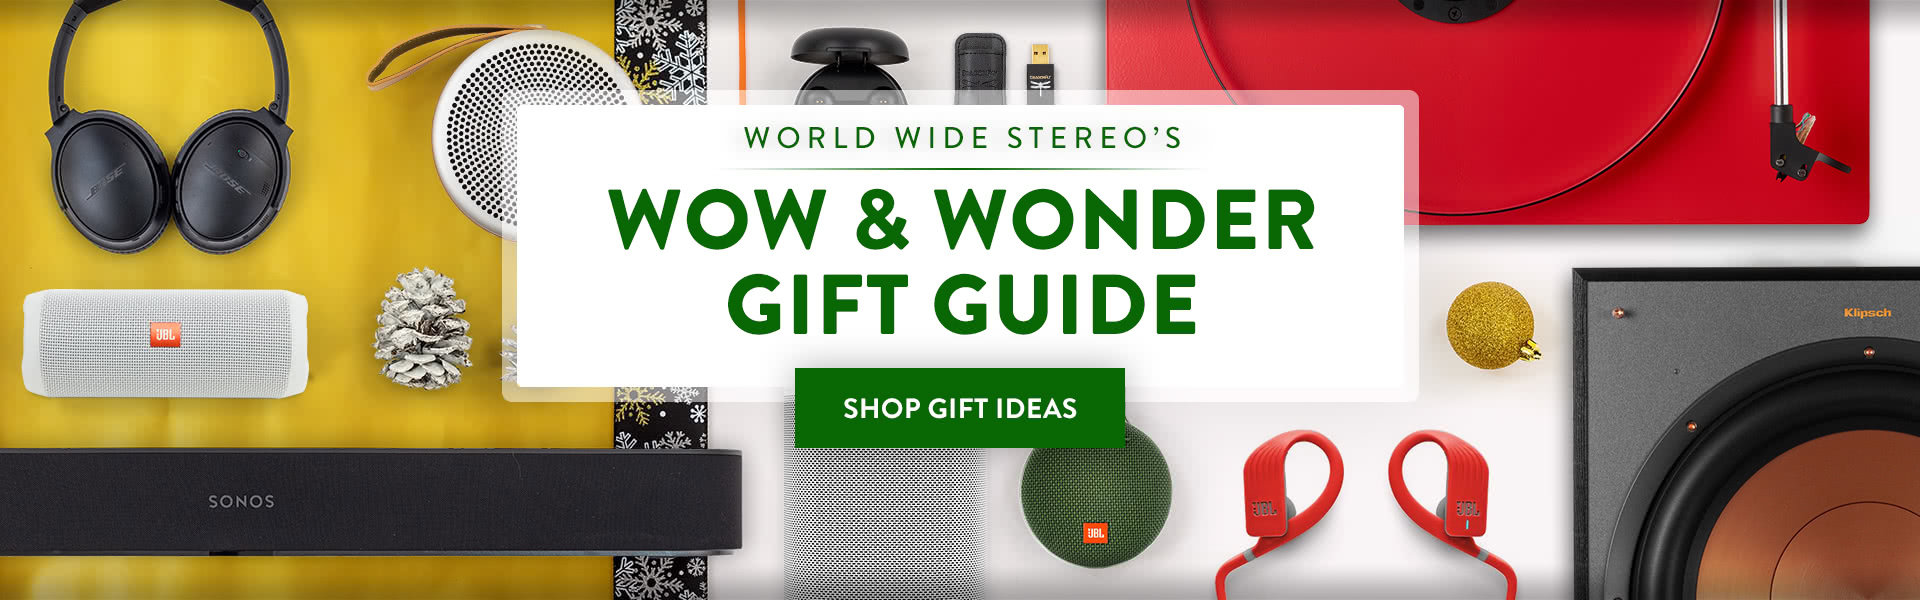 World Wide Stereo Gift Guide